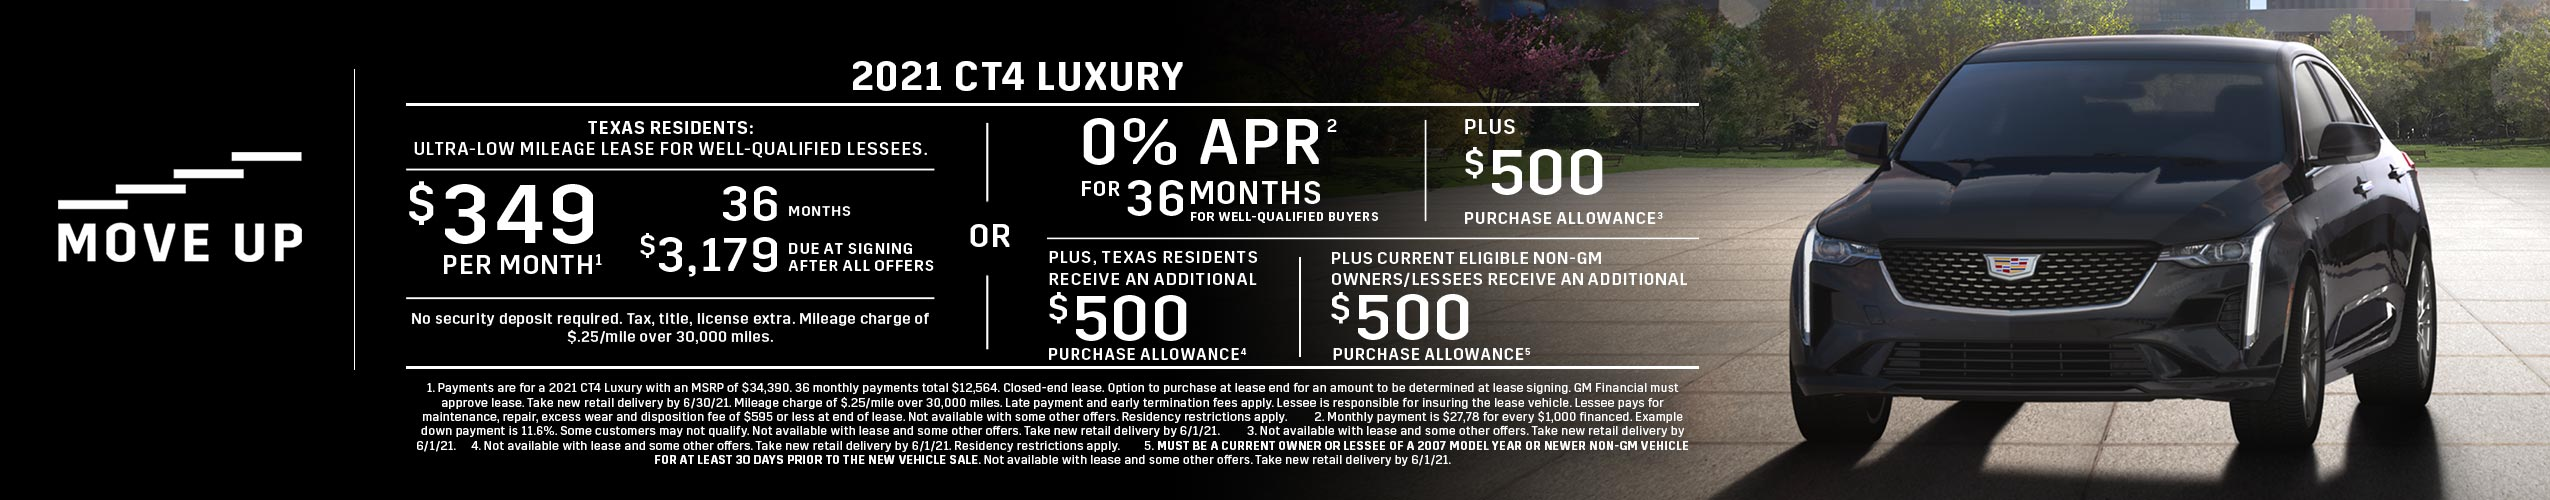 2021 CT4 Luxury: Lease or APR Offer (Image) - cb3536